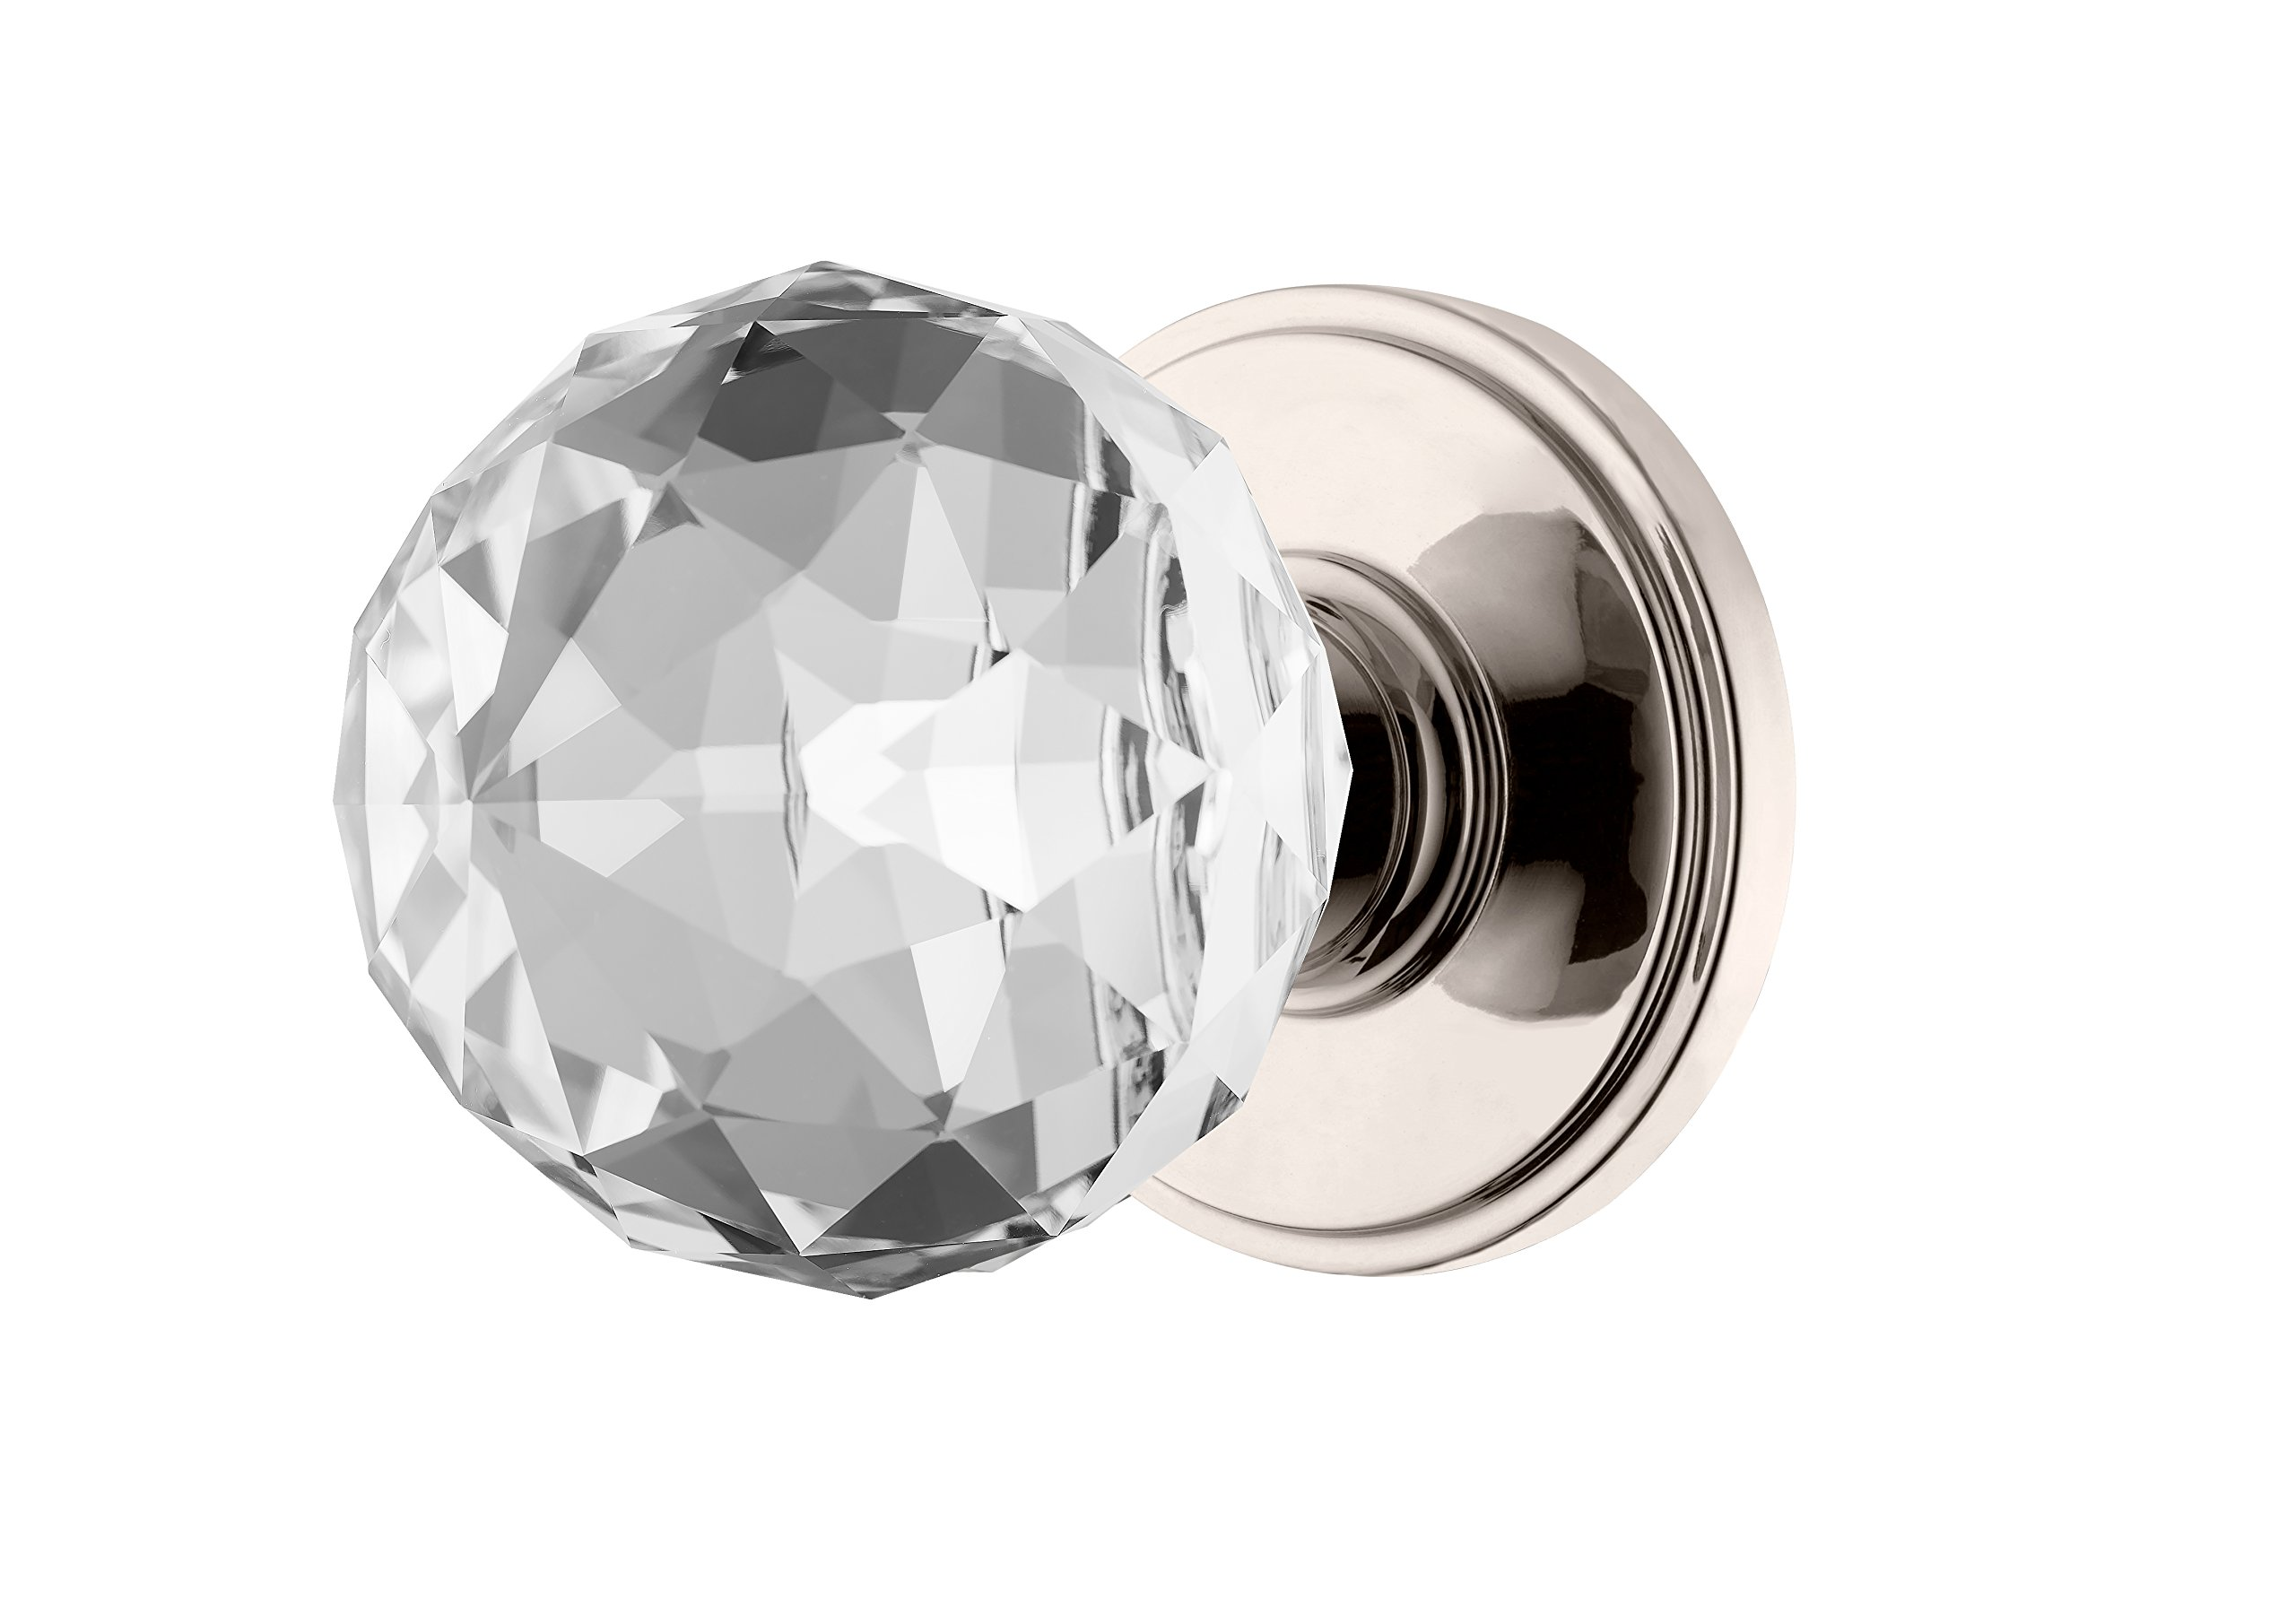 Decor Living, AMG and Enchante Accessories Faceted Crystal Door Knobs with Lock, Privacy Function for Bed and Bath, IRIS Collection, DK04L-PR NKL, Polished Nickel